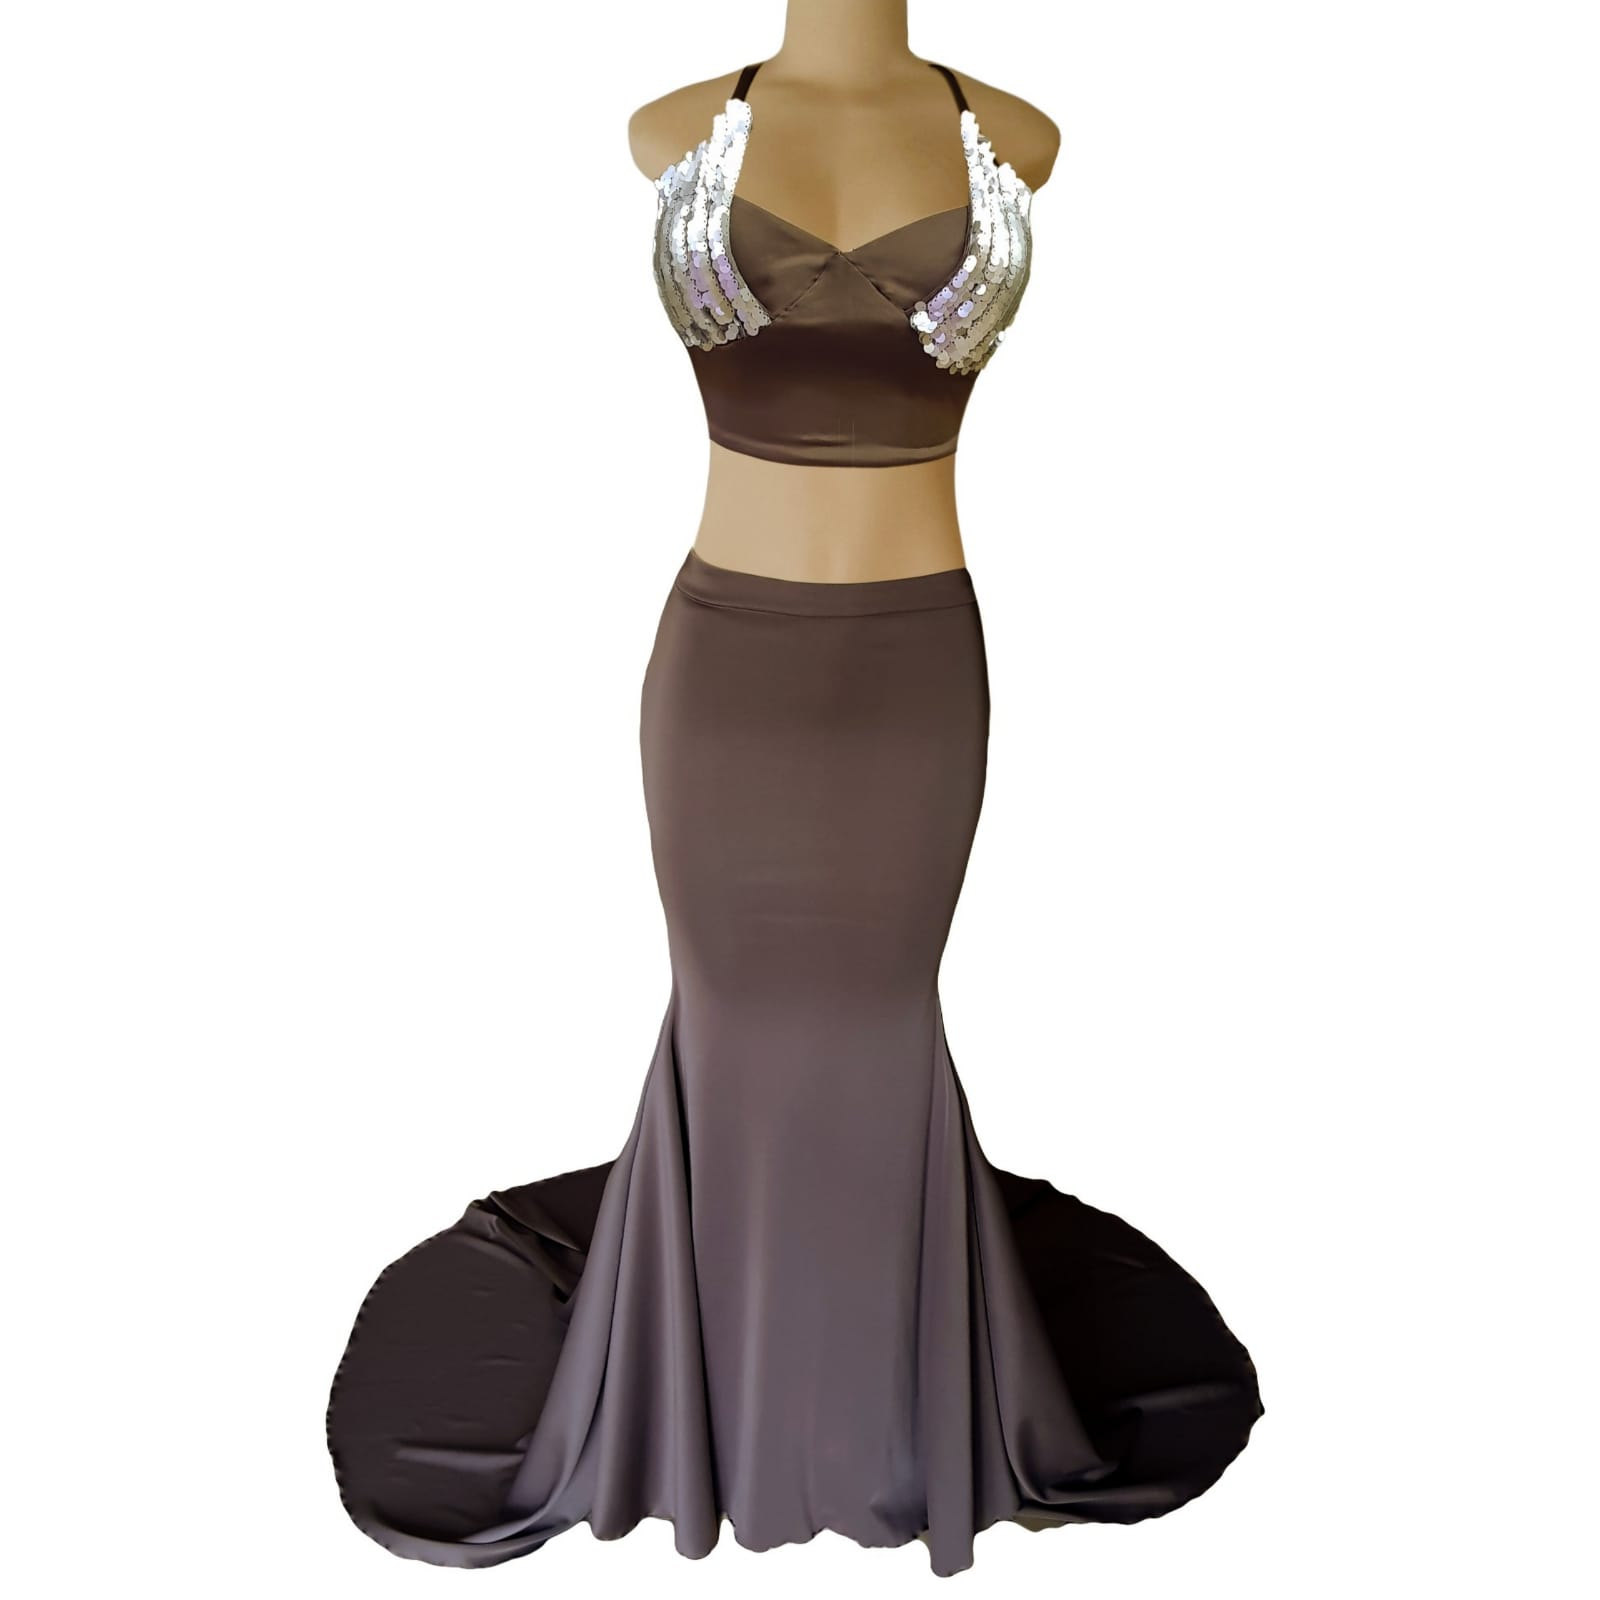 2 piece brown gray prom dress 5 2 piece brown gray prom dress. Skirt as a soft mermaid. Top with an open lace up back. Bust detailed with sequins. With a long train.